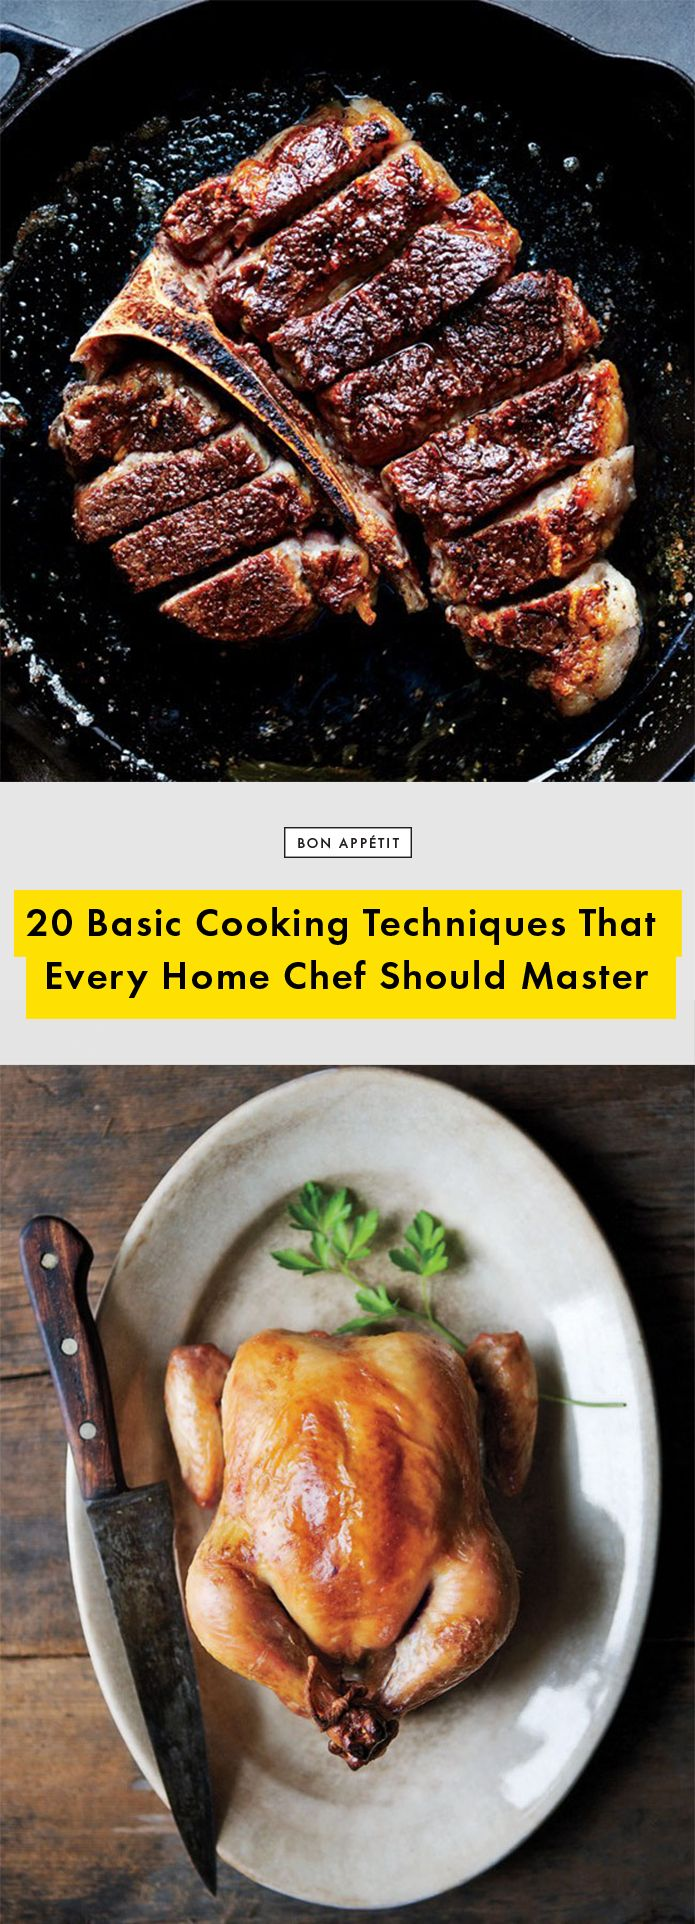 20 Basic Cooking Techniques That Every Home Chef Should Master | Bon Appetit